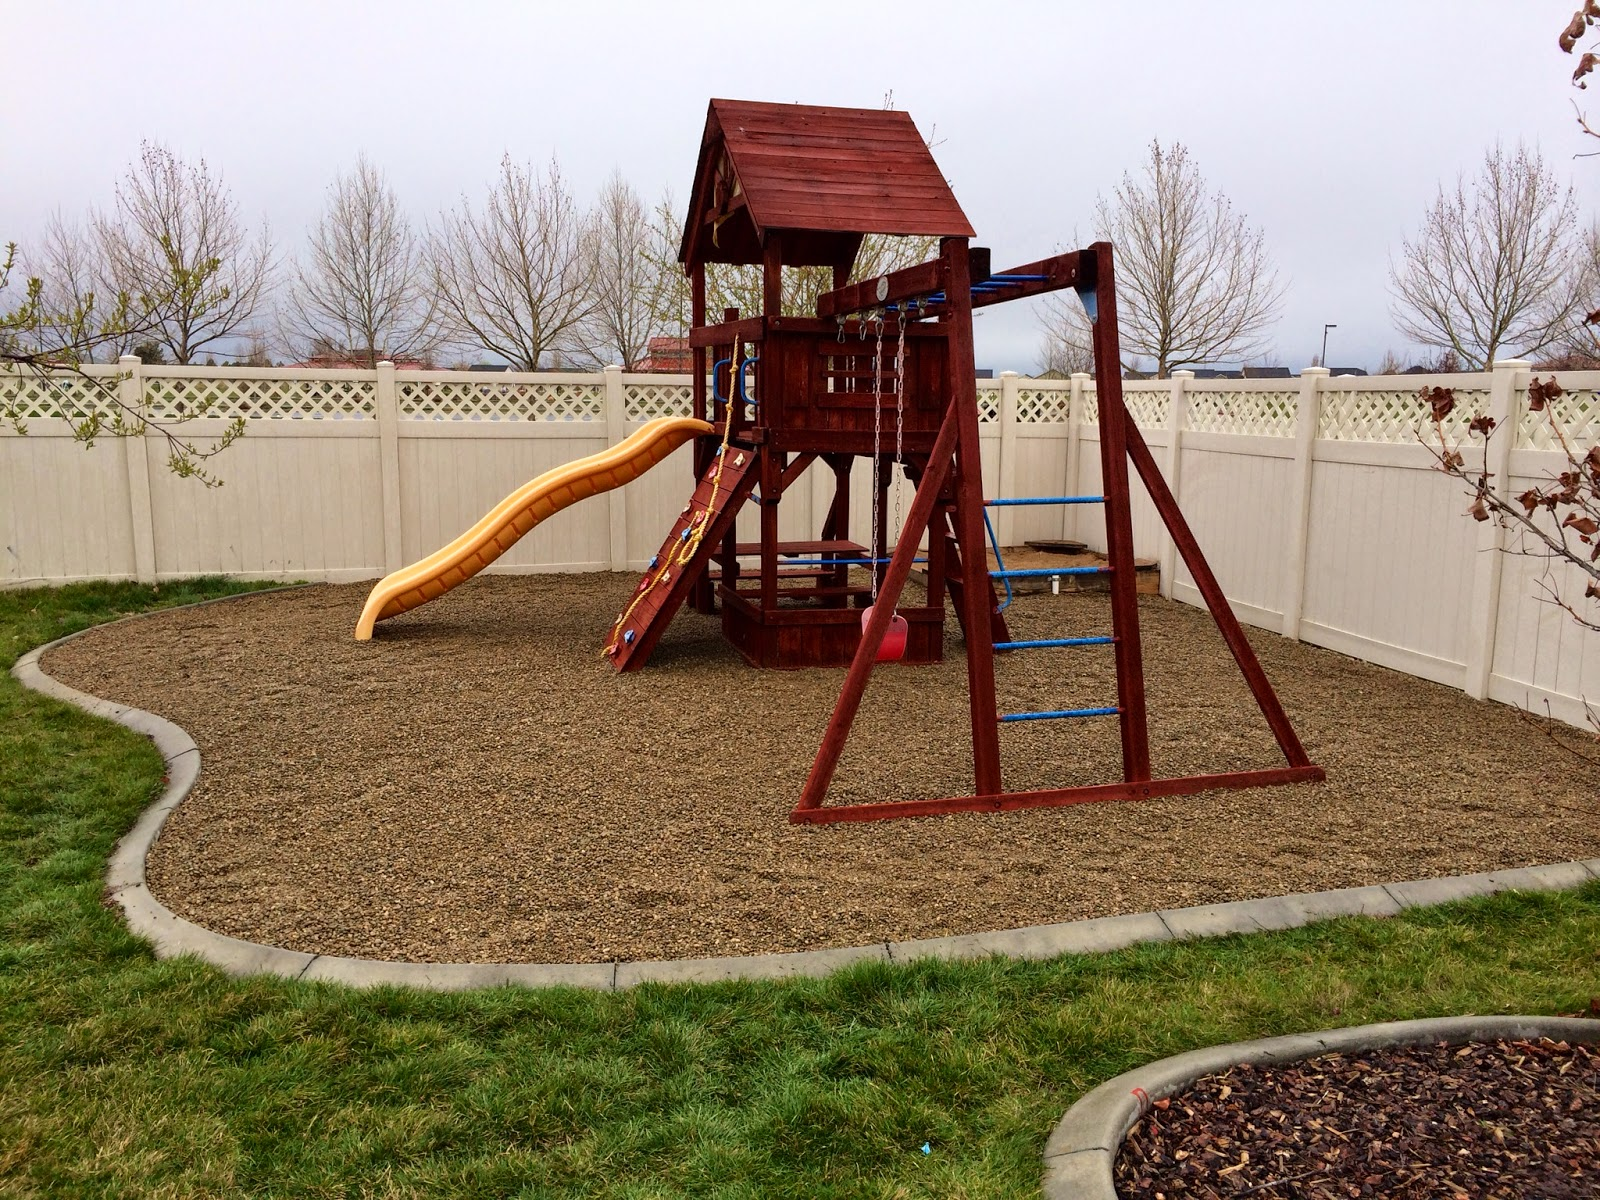 pea gravel playground sand play area just repainted and added pea gravel this spring bedroom house in meridian at bridgetower